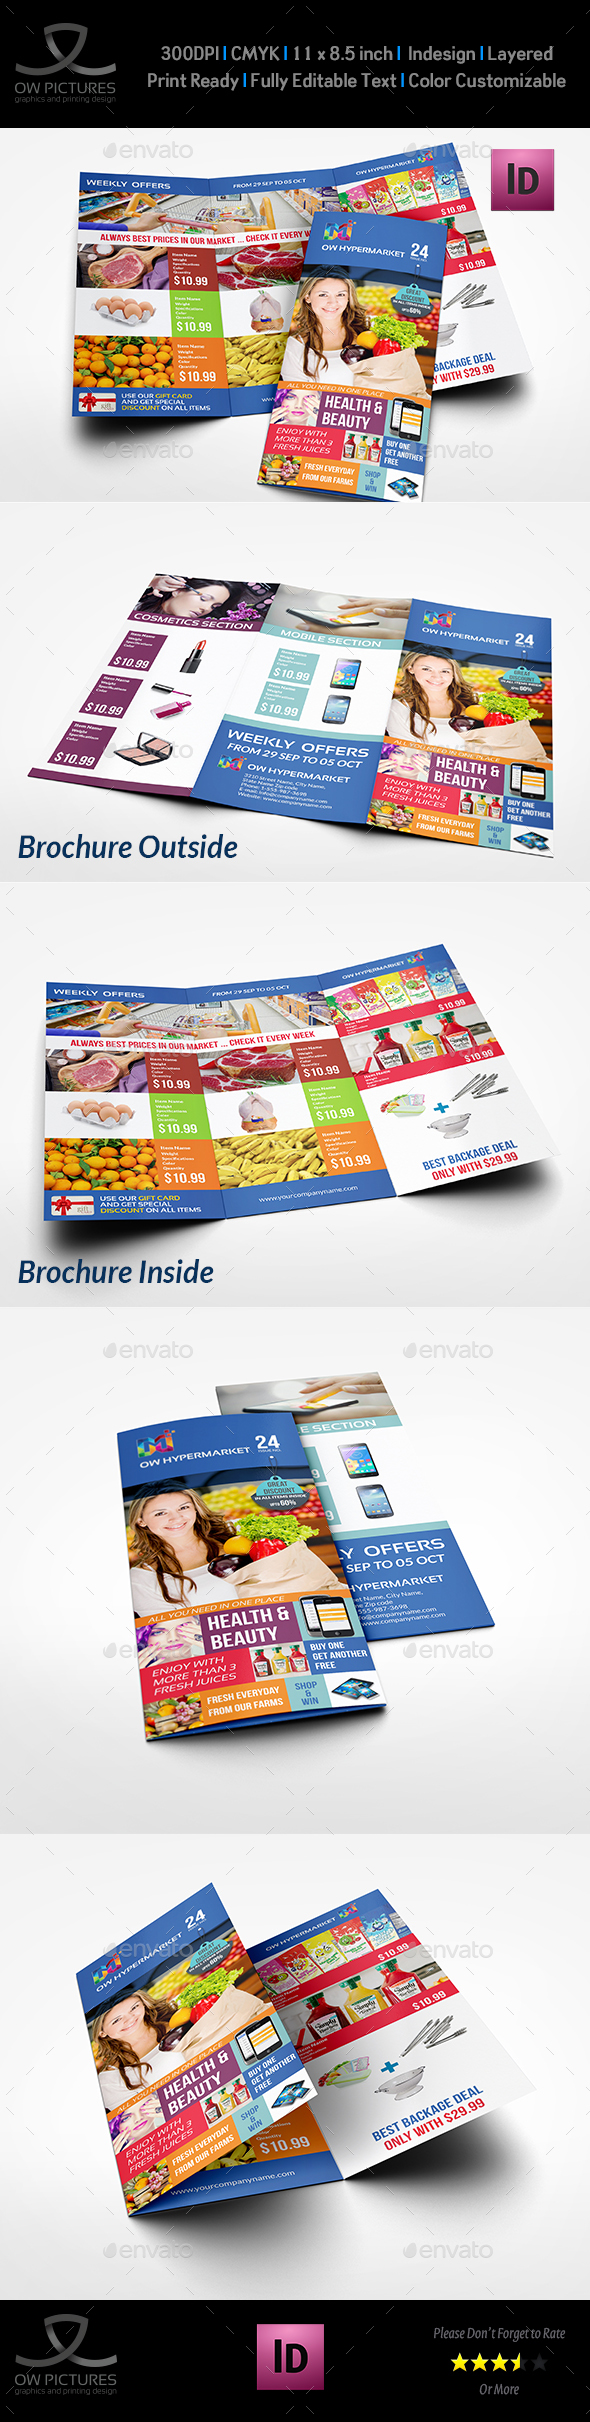 Supermarket Products Tri-Fold Catalog Brochure Template - Catalogs Brochures